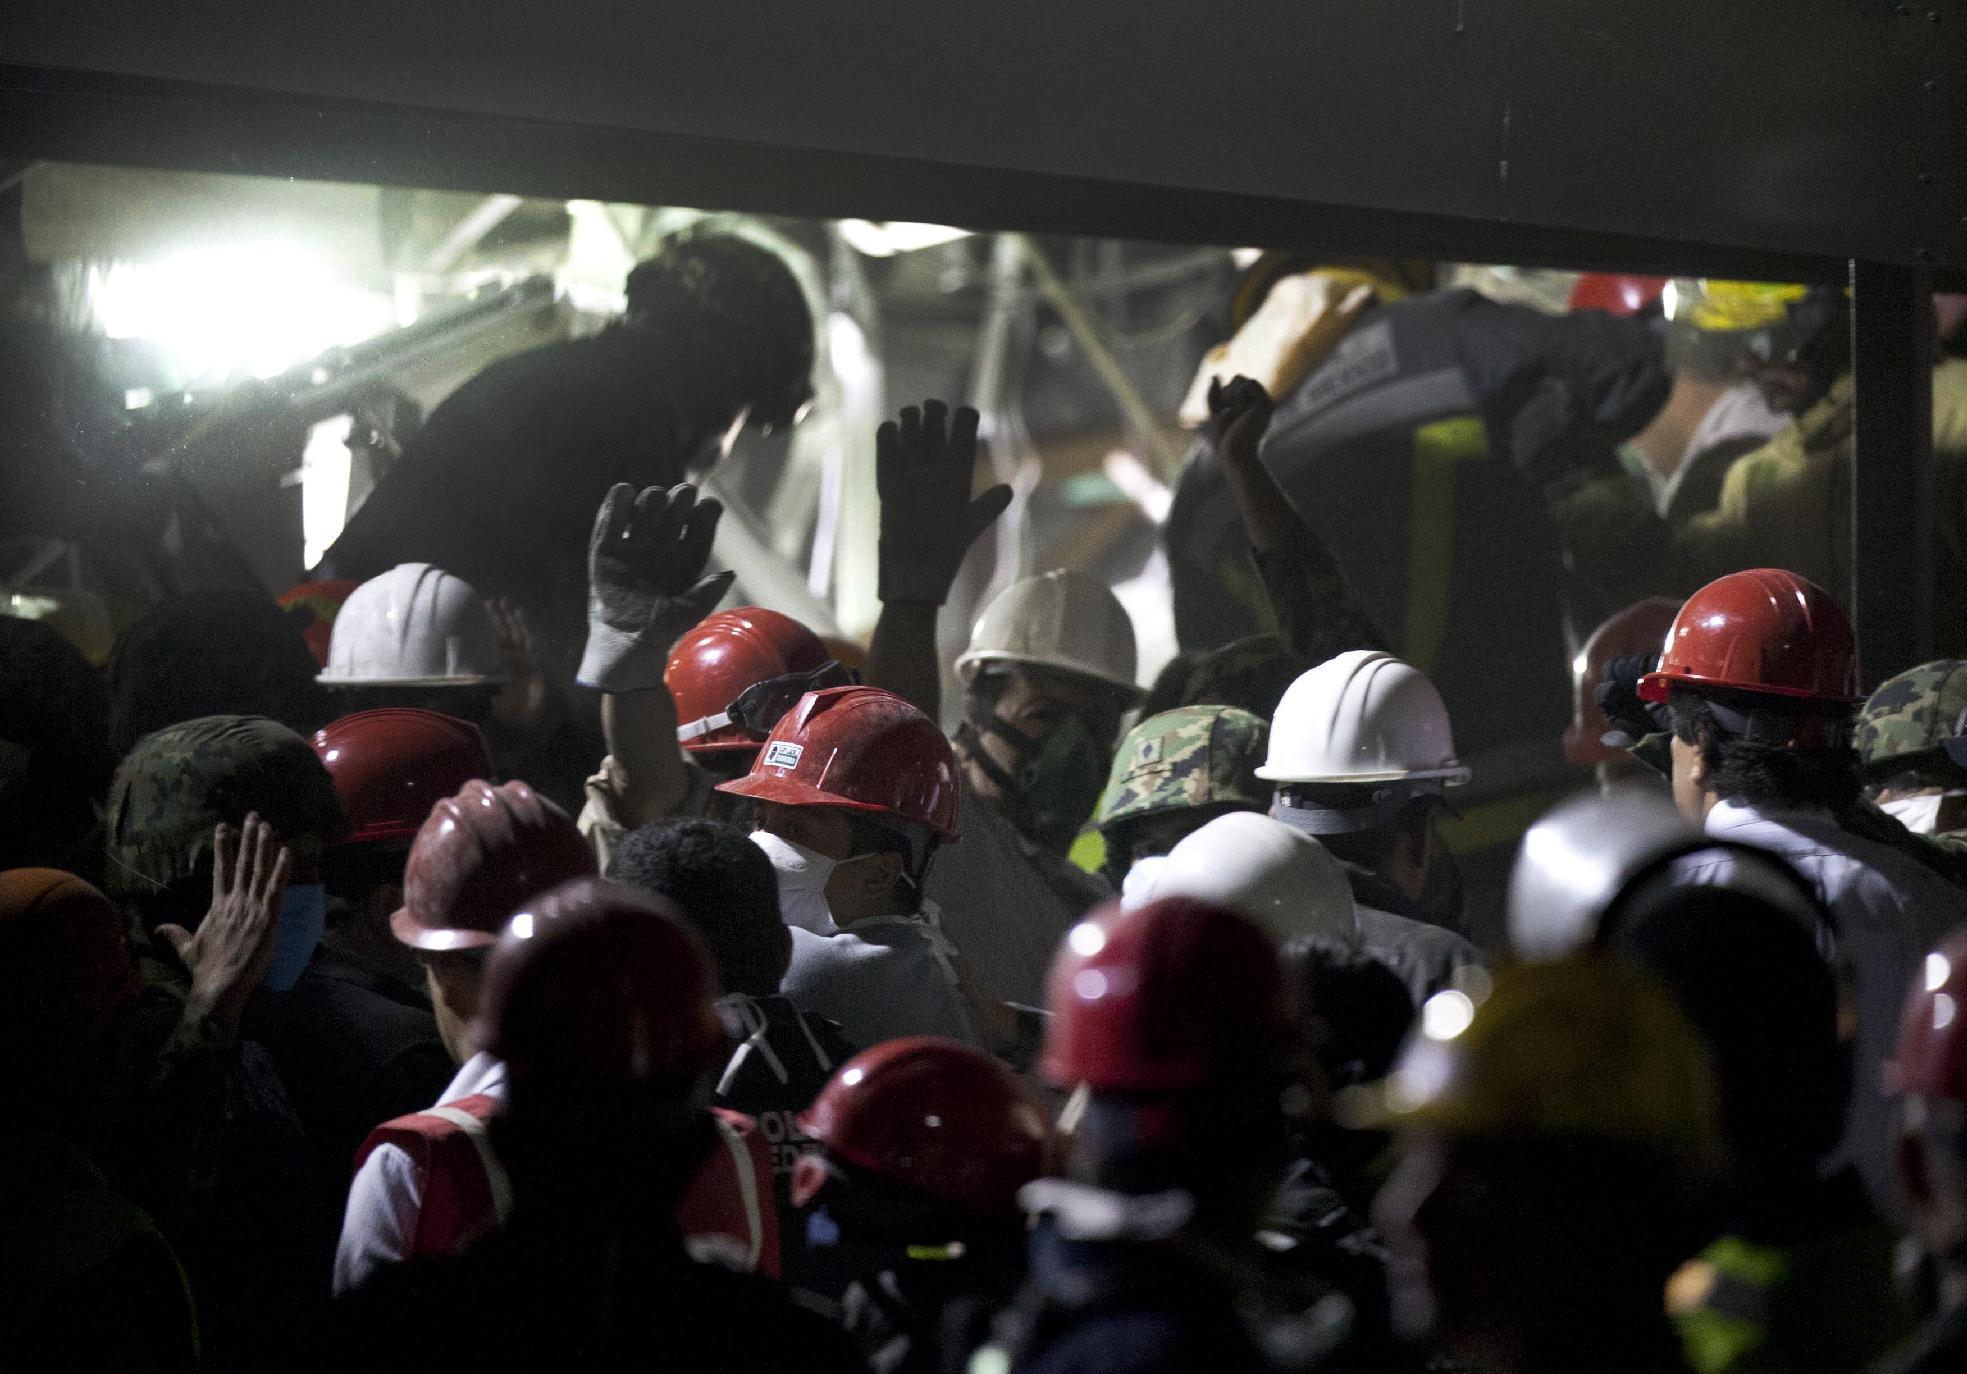 Rescue workers, firefighters and military search for survivors at the site of an explosion in a building at Mexico's state-owned oil company PEMEX complex, in Mexico City, Thursday Jan. 31, 2013. The explosion killed more than 10 people and injured some 80 as it heavily damaged three floors of the building. According to civil protection and local media some people remained trapped in the debris from the explosion, which occurred in the basement of an administrative building next to the iconic, 52-story tower of Petroleos Mexicanos, or PEMEX. (AP Photo/Eduardo Verdugo)